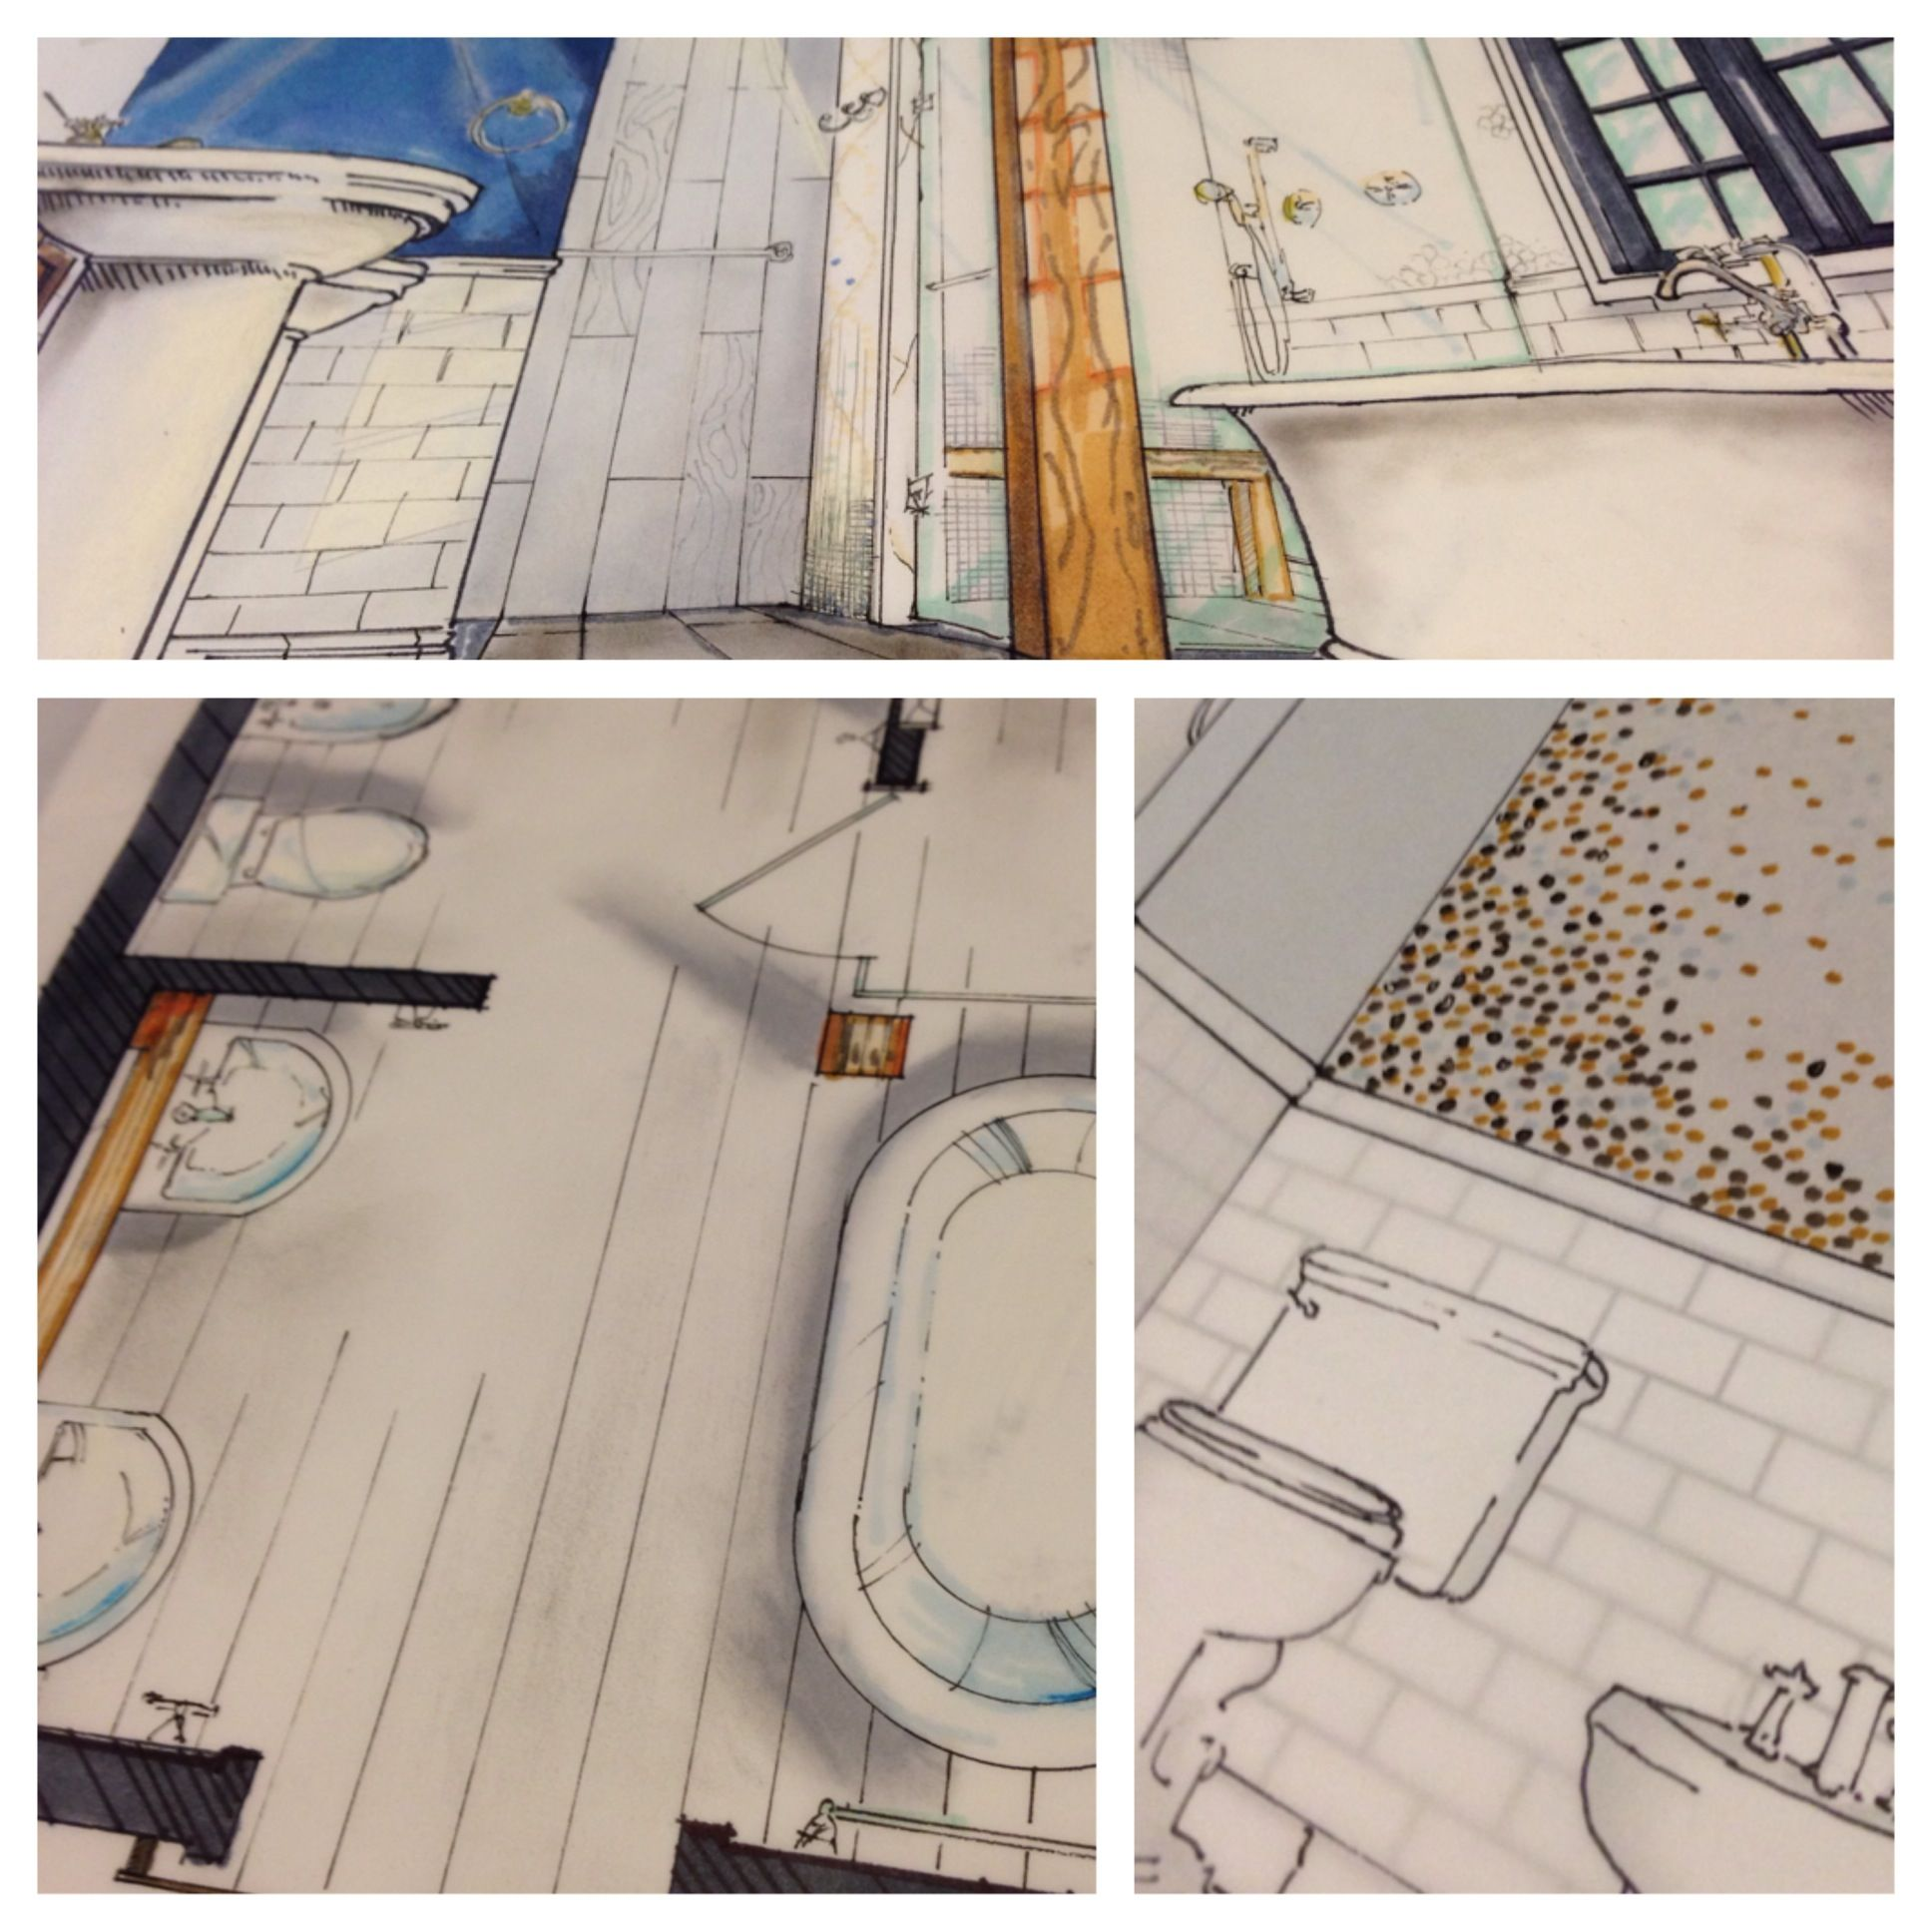 A couple detail shots of the renderings I worked on for the project. All done by your's truly - no outsourcing here!